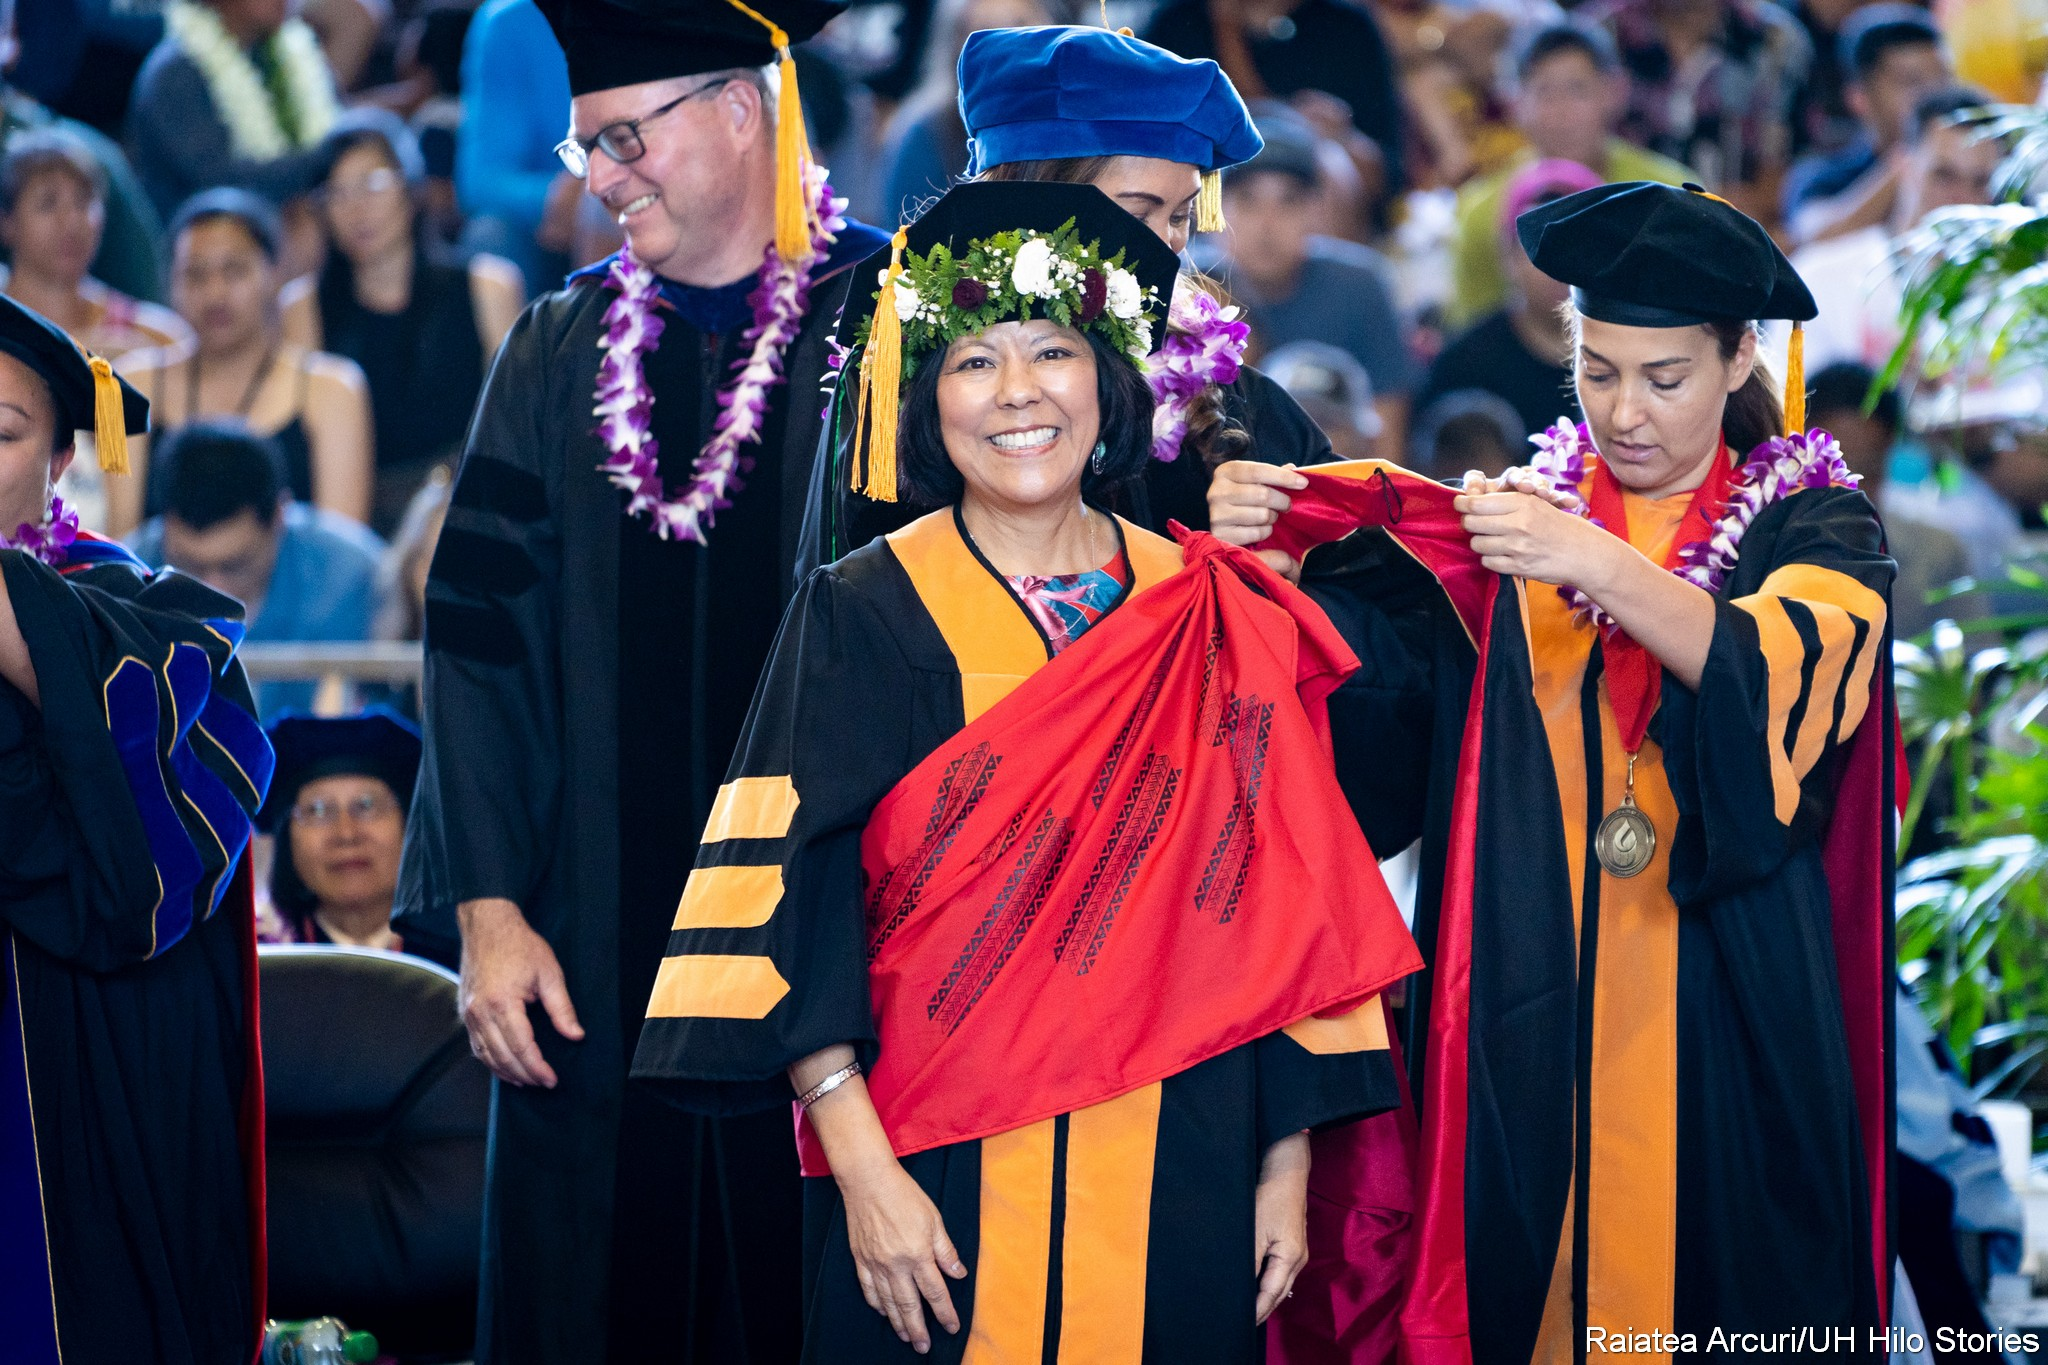 Smiling female graduate just about to receive hood. Official stands to right holding hood.